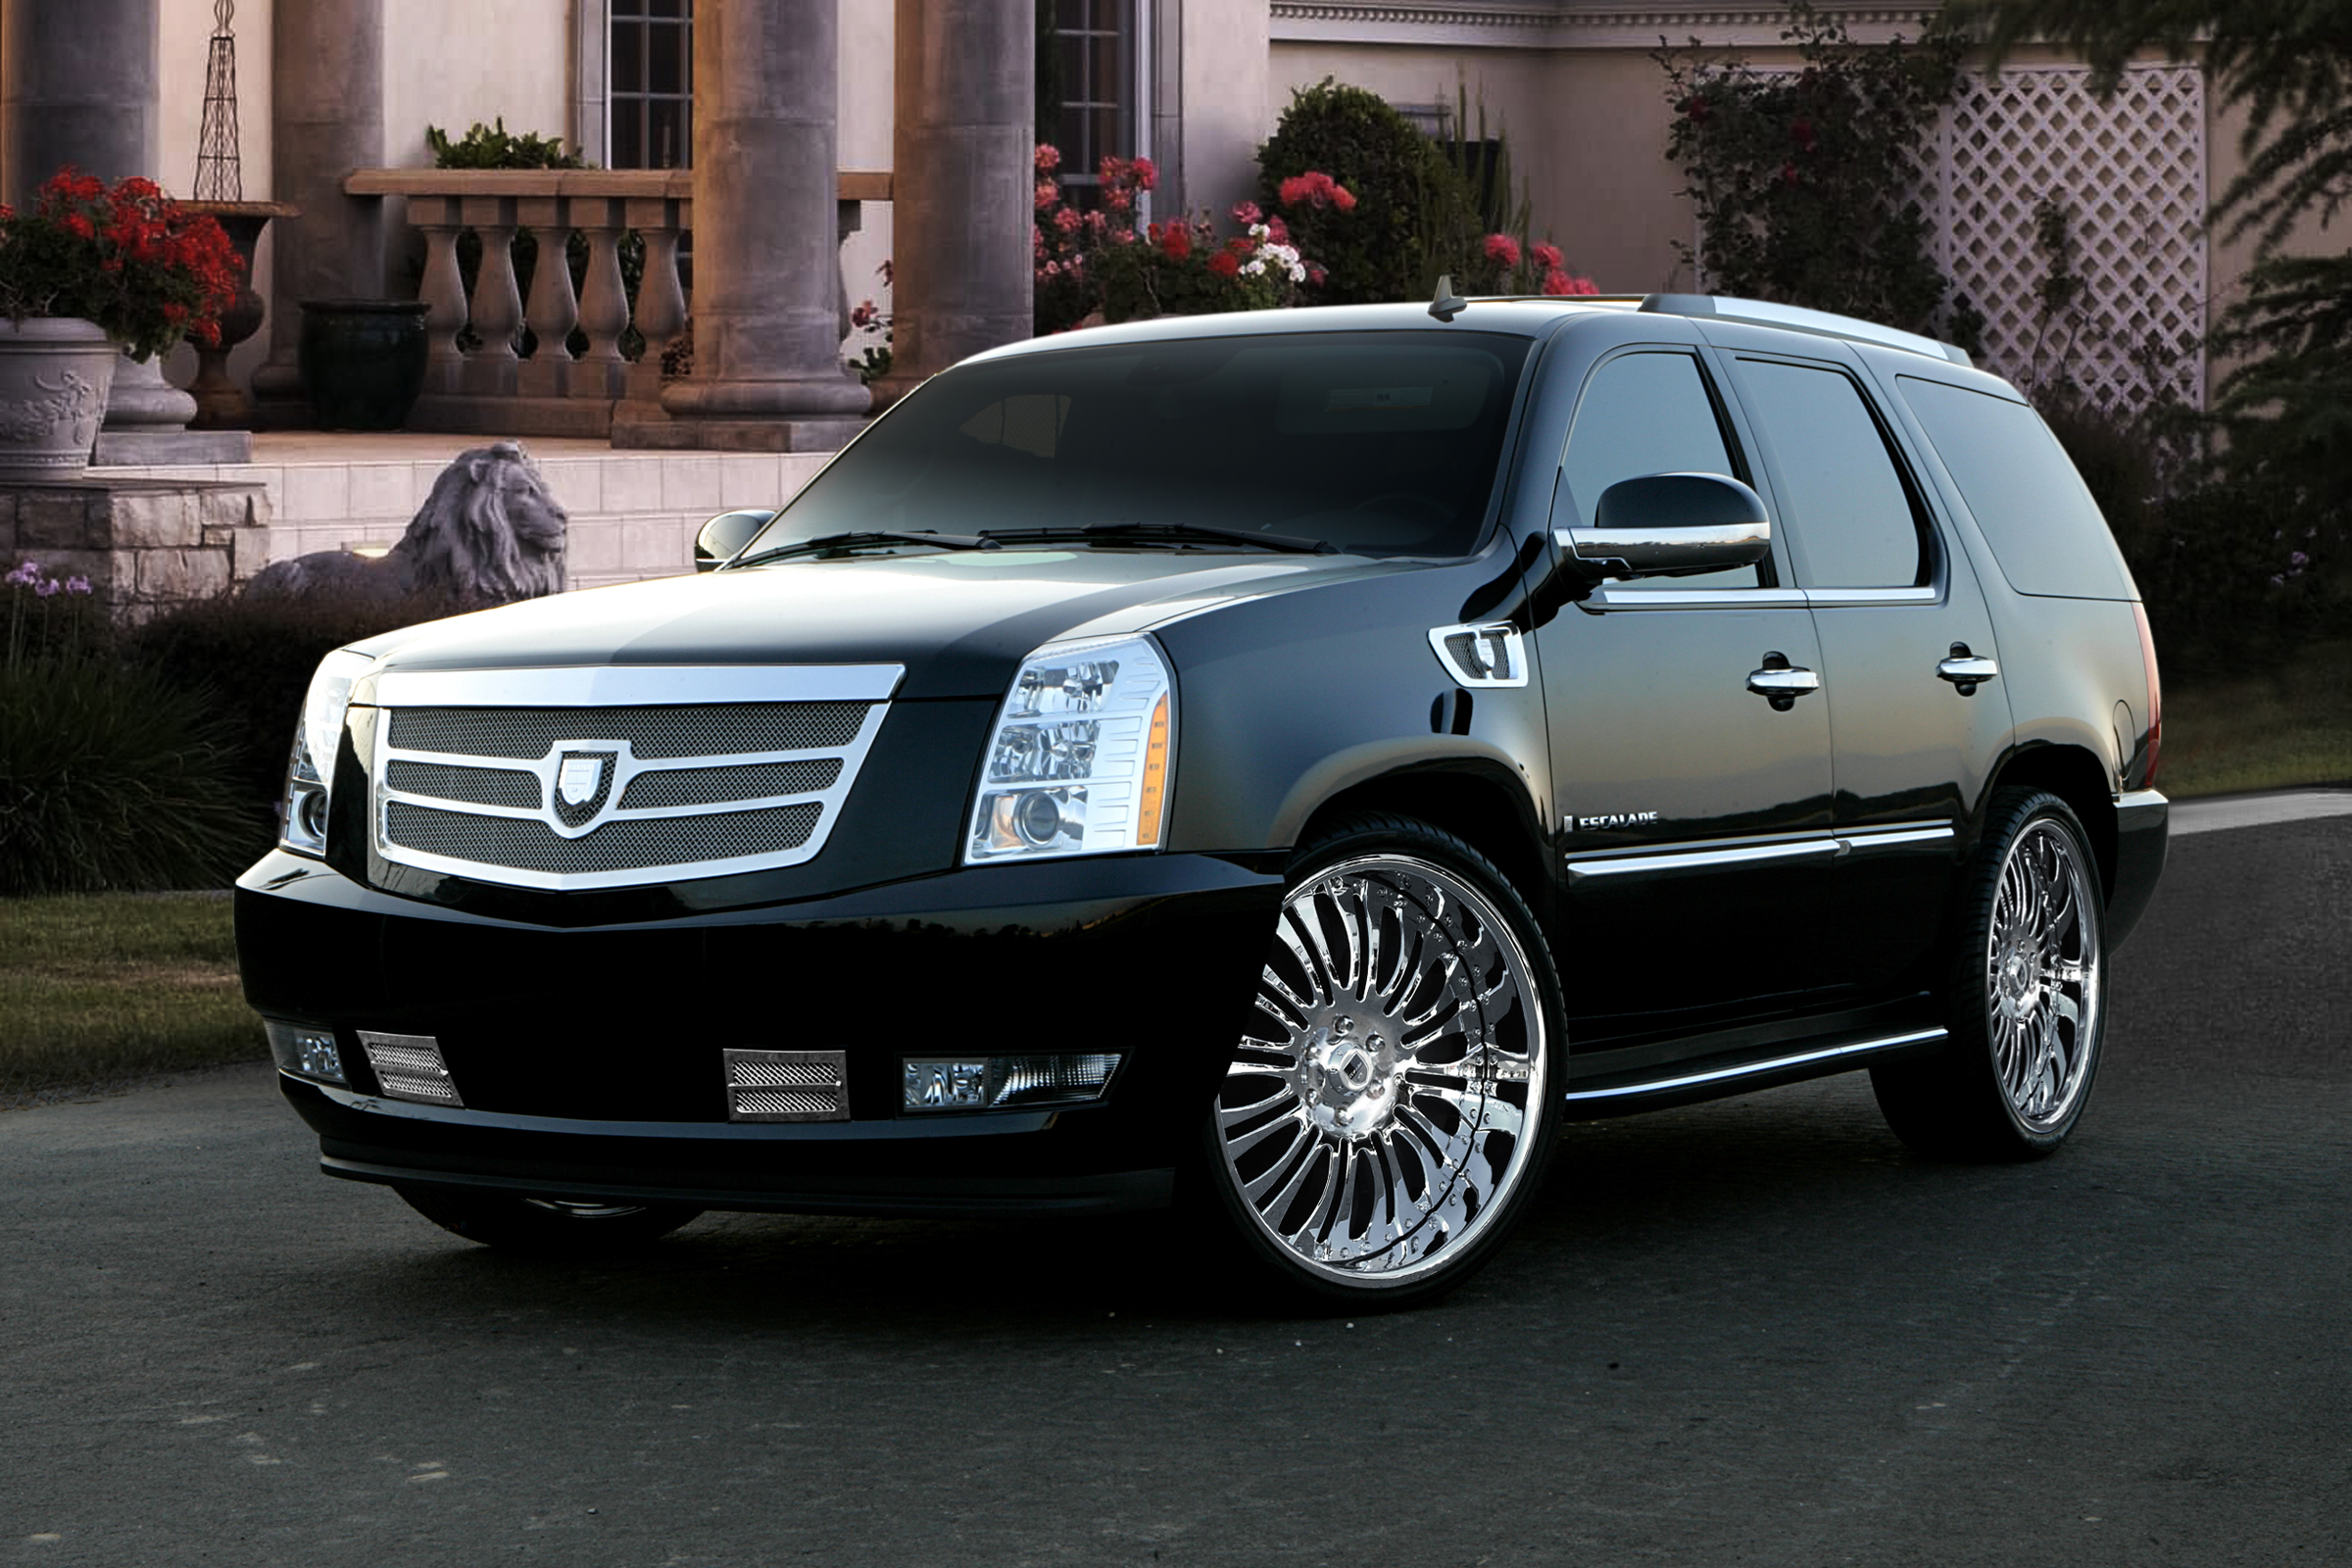 Cadillac escalade photo - 4